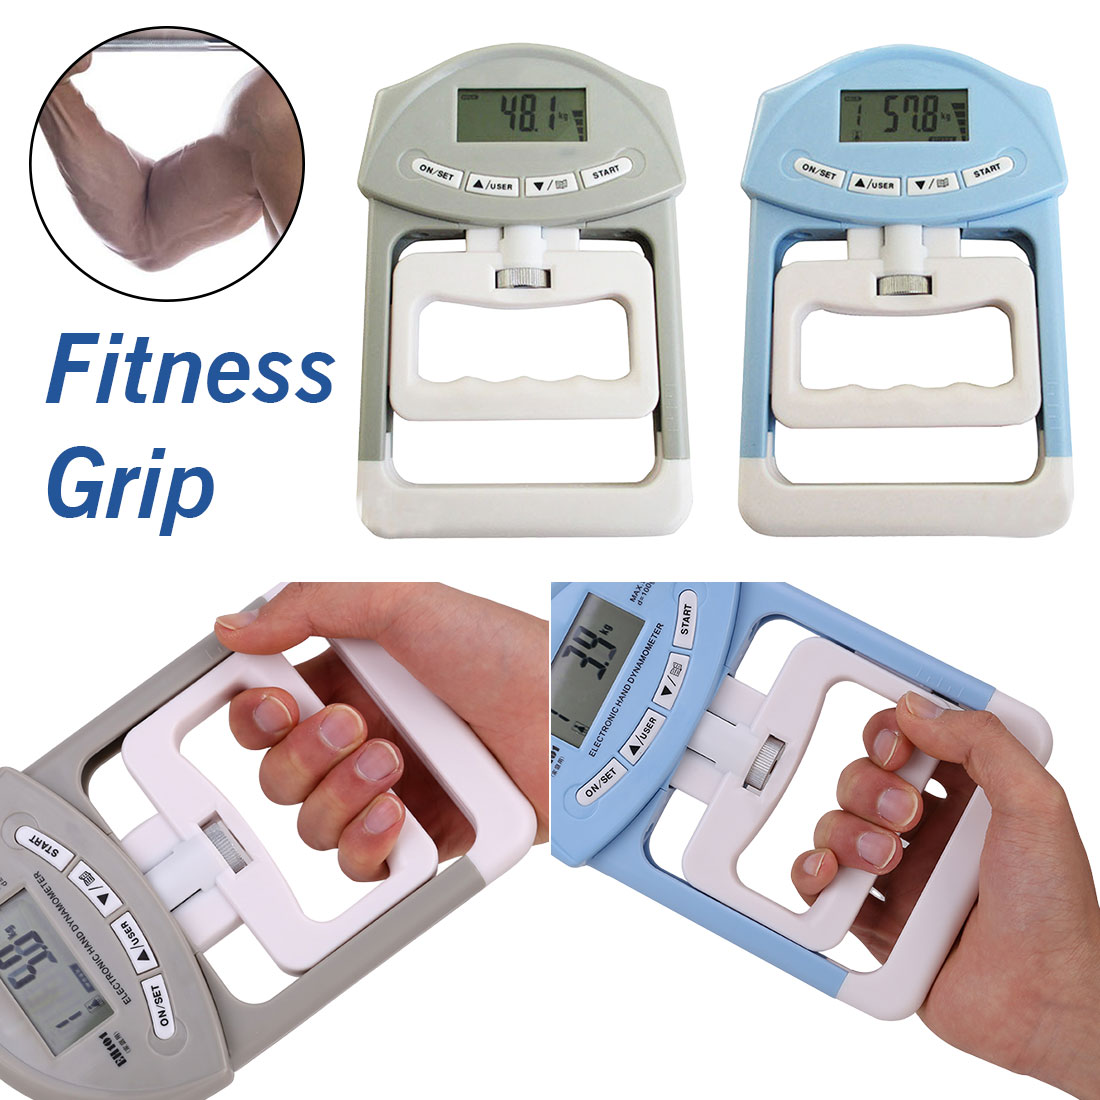 New 90kg/198Ib Digital LCD Dynamometer Hand Grip Power Measurement Strength Meter for Body Building Gym Exercises